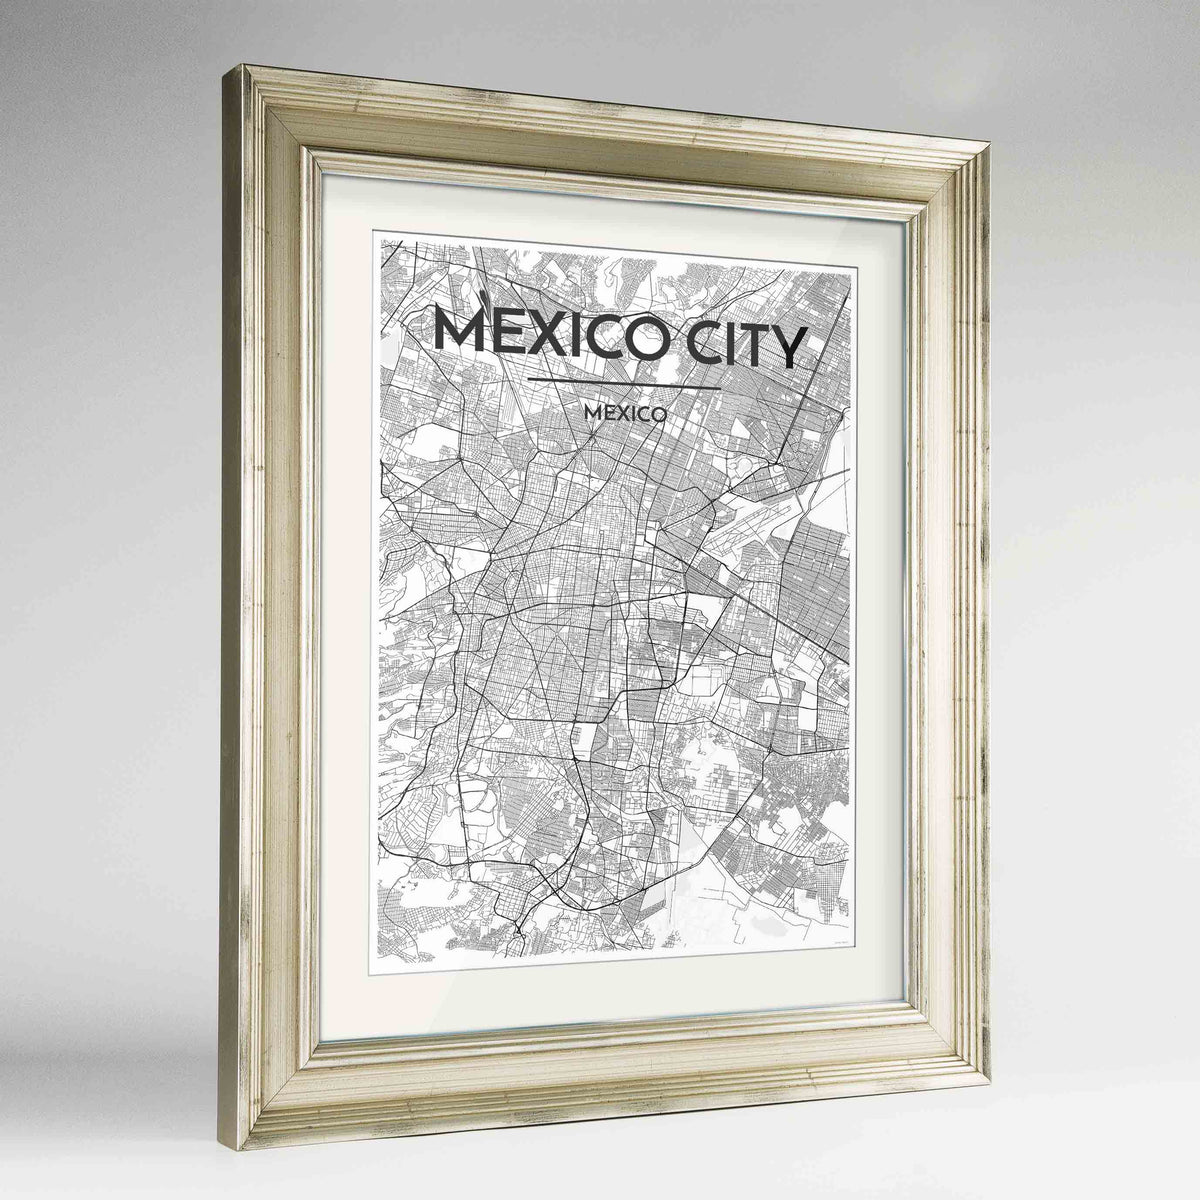 "Framed Mexico City Map Art Print 24x36"" Champagne frame Point Two Design Group"